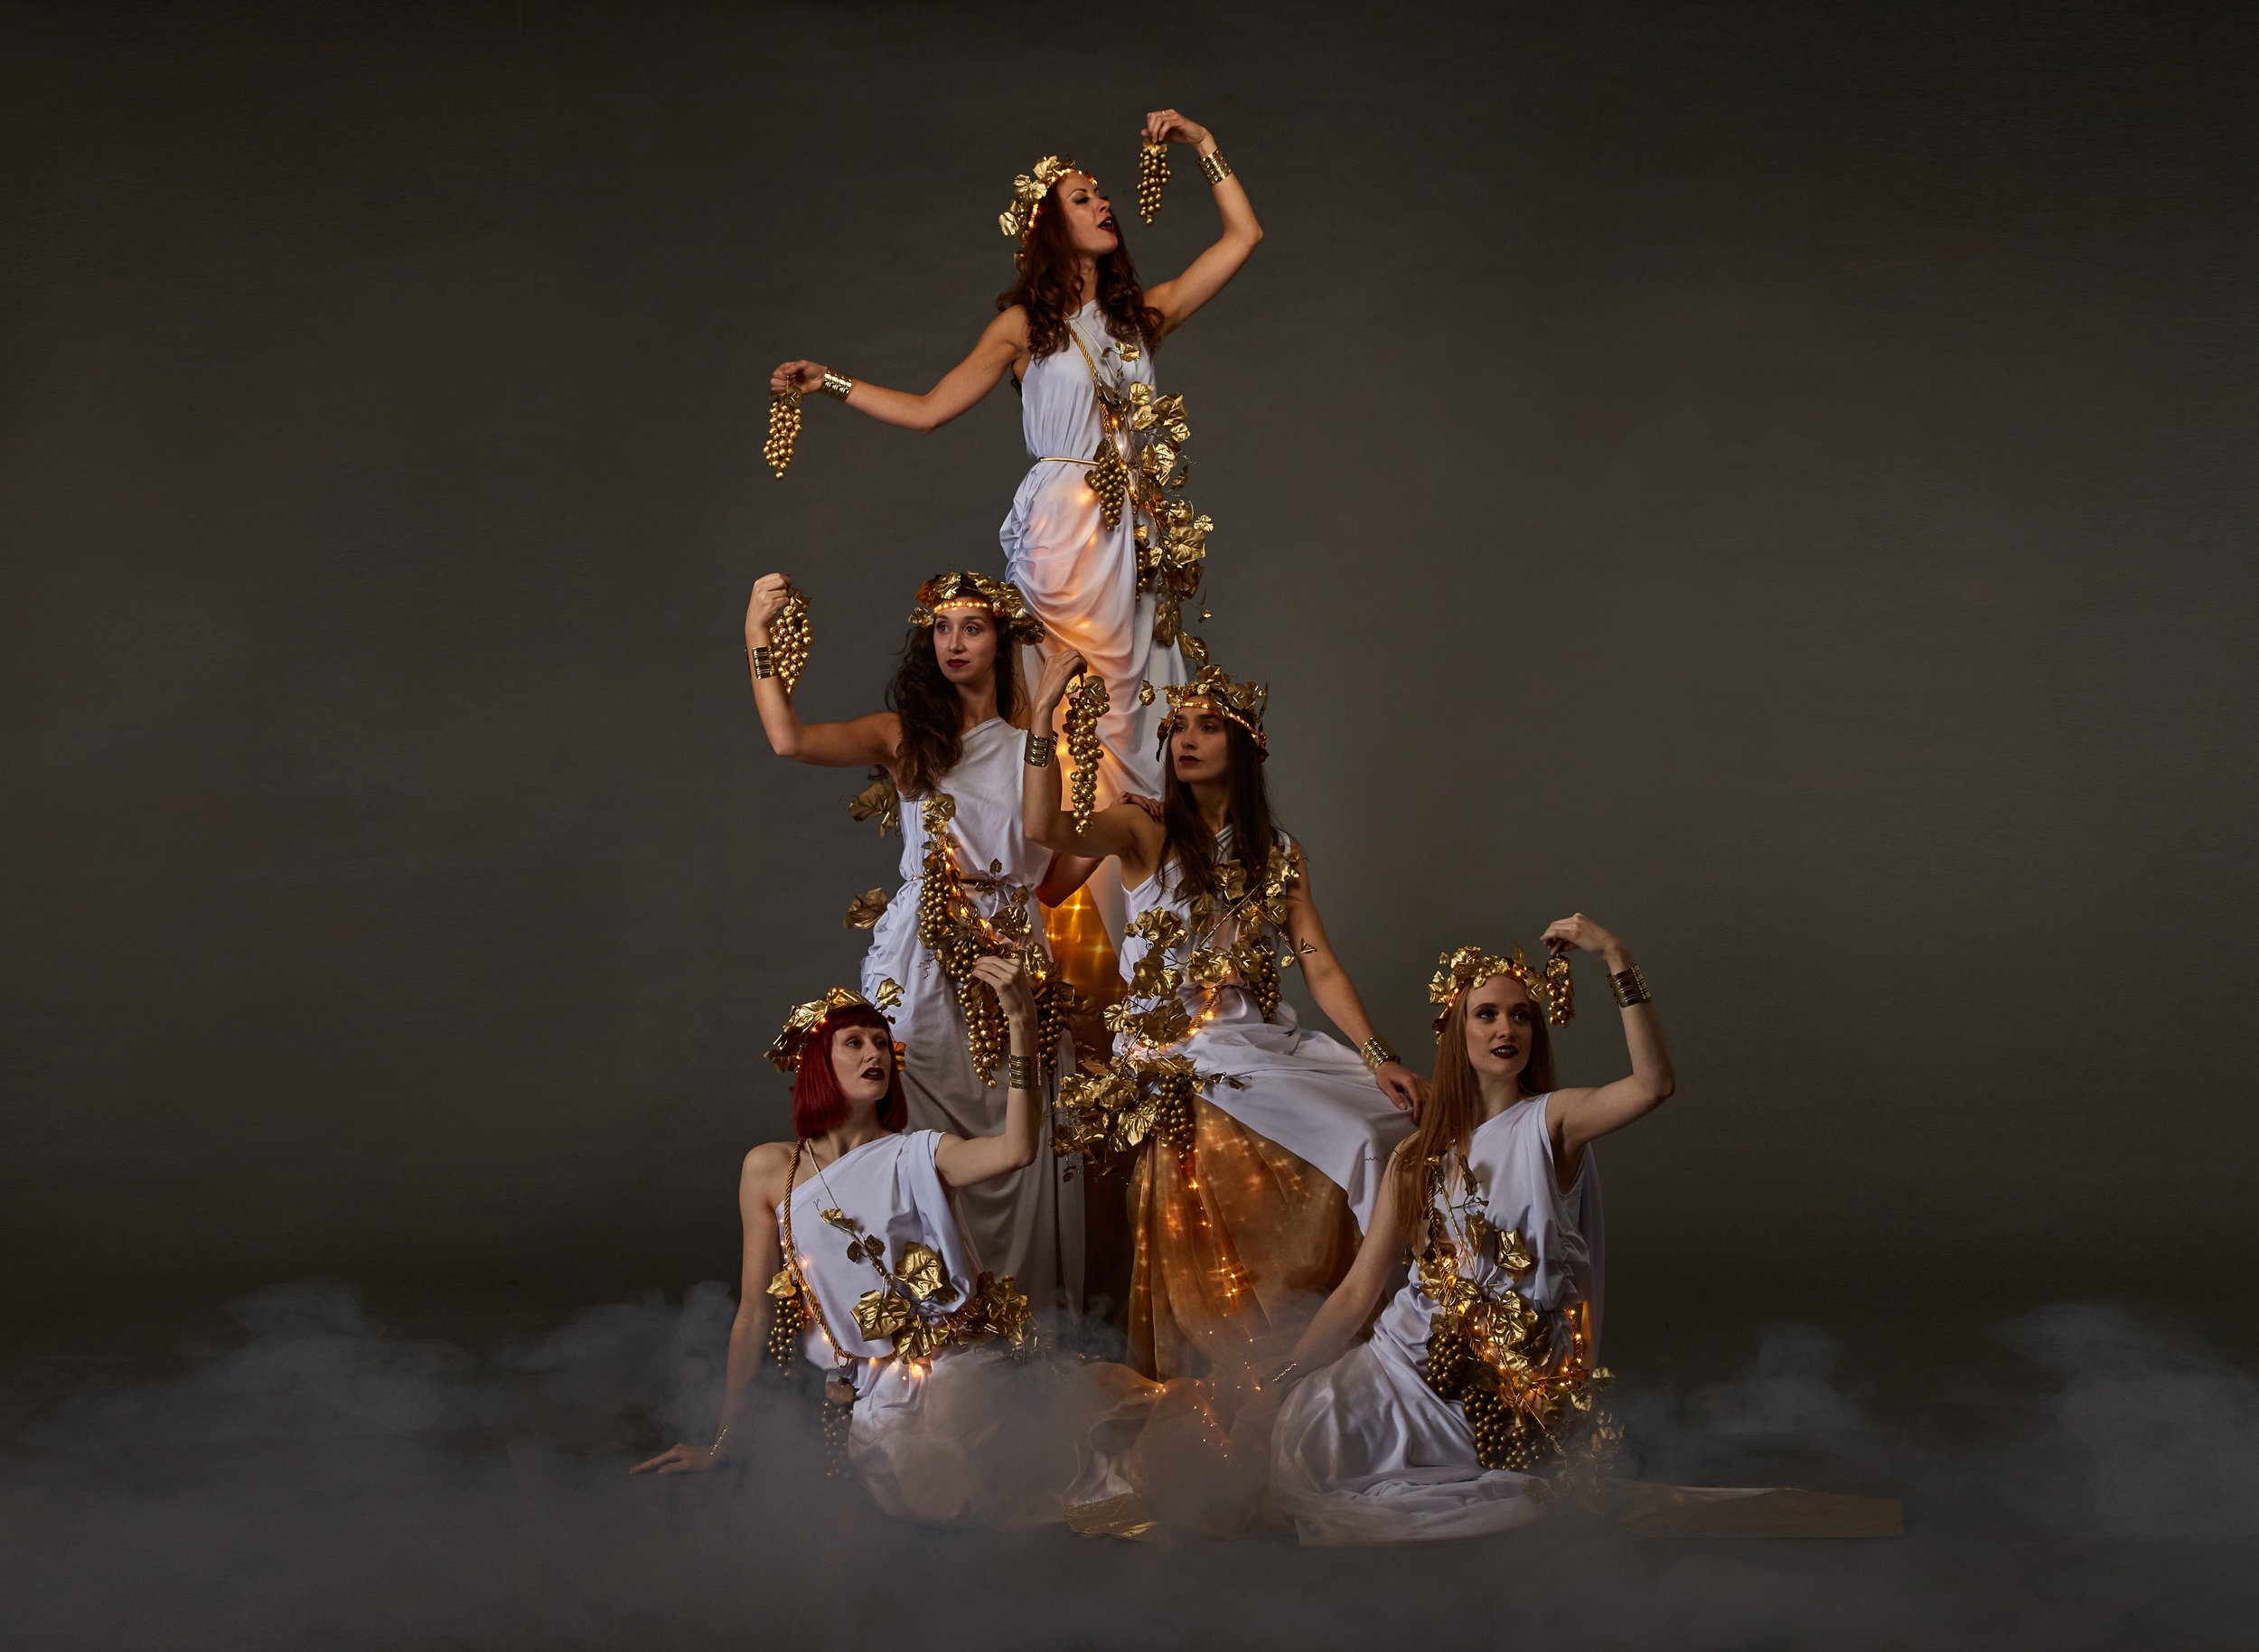 Edible Collection - The Banquet, illuminated stilt and ground performance, Divine Company web.jpg